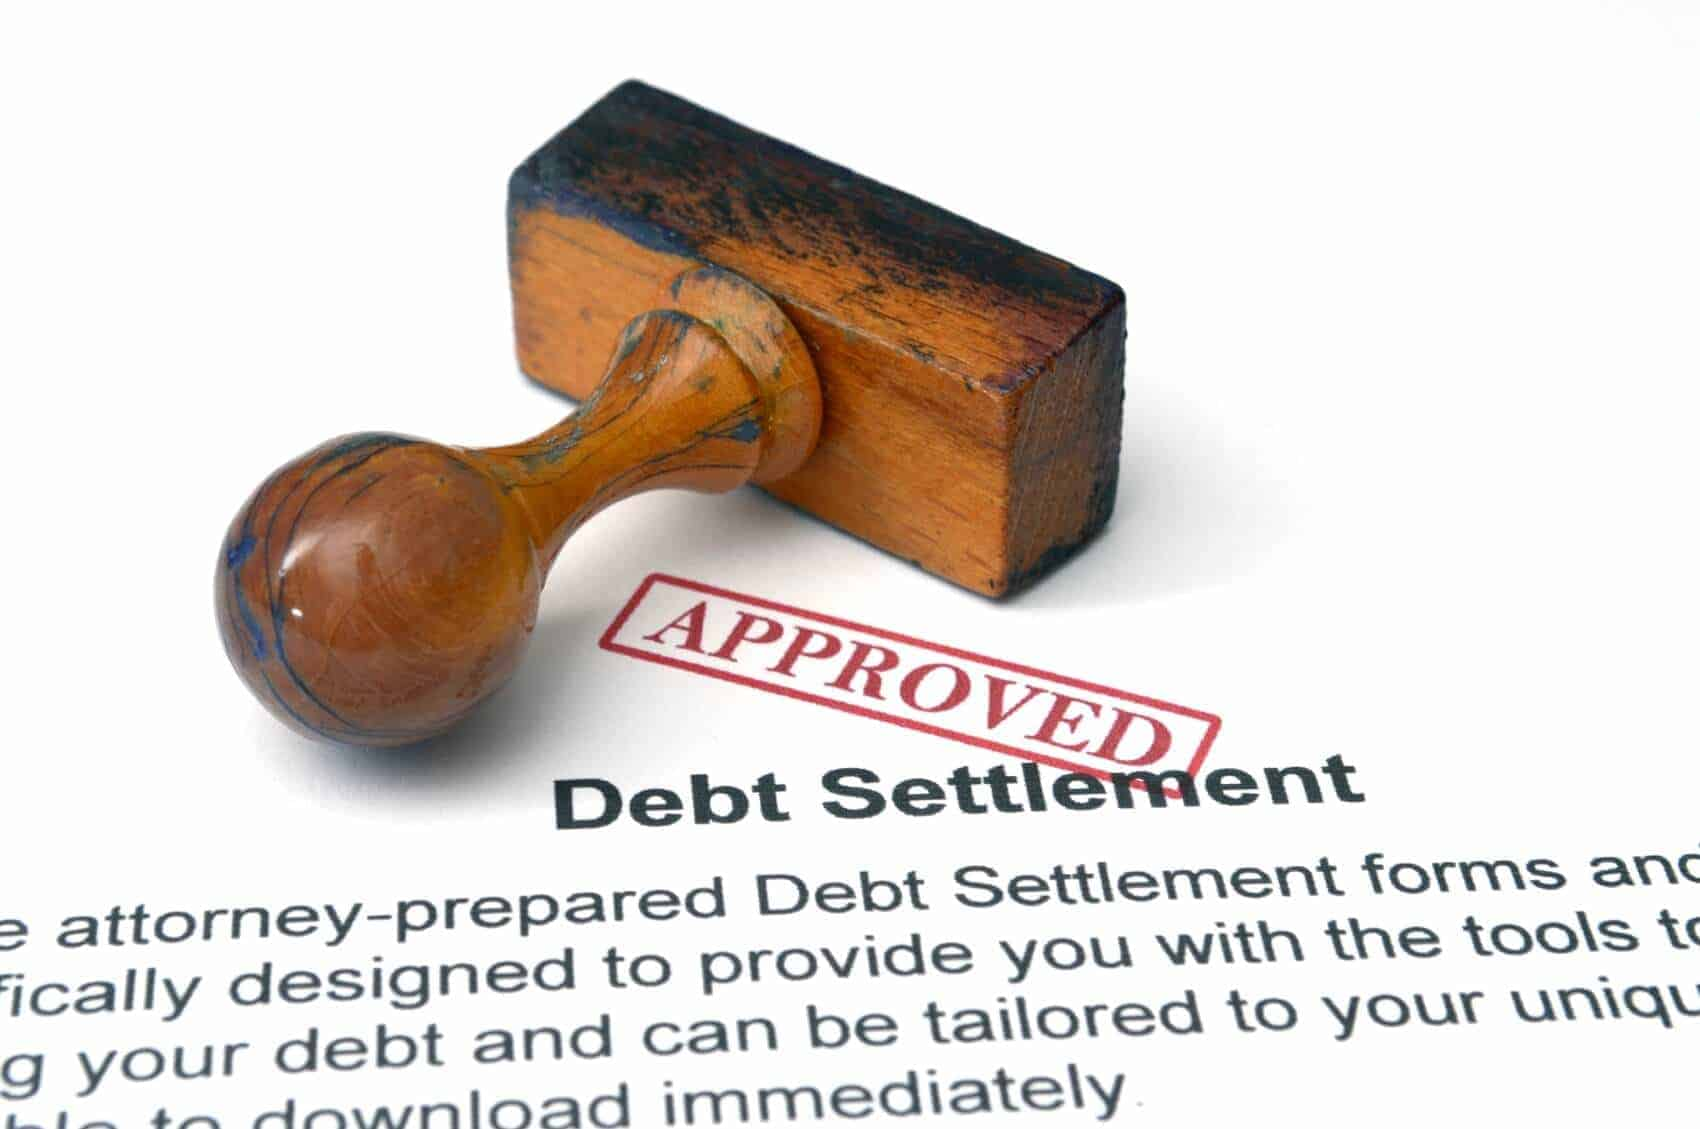 Only some debts can be approved for settlement